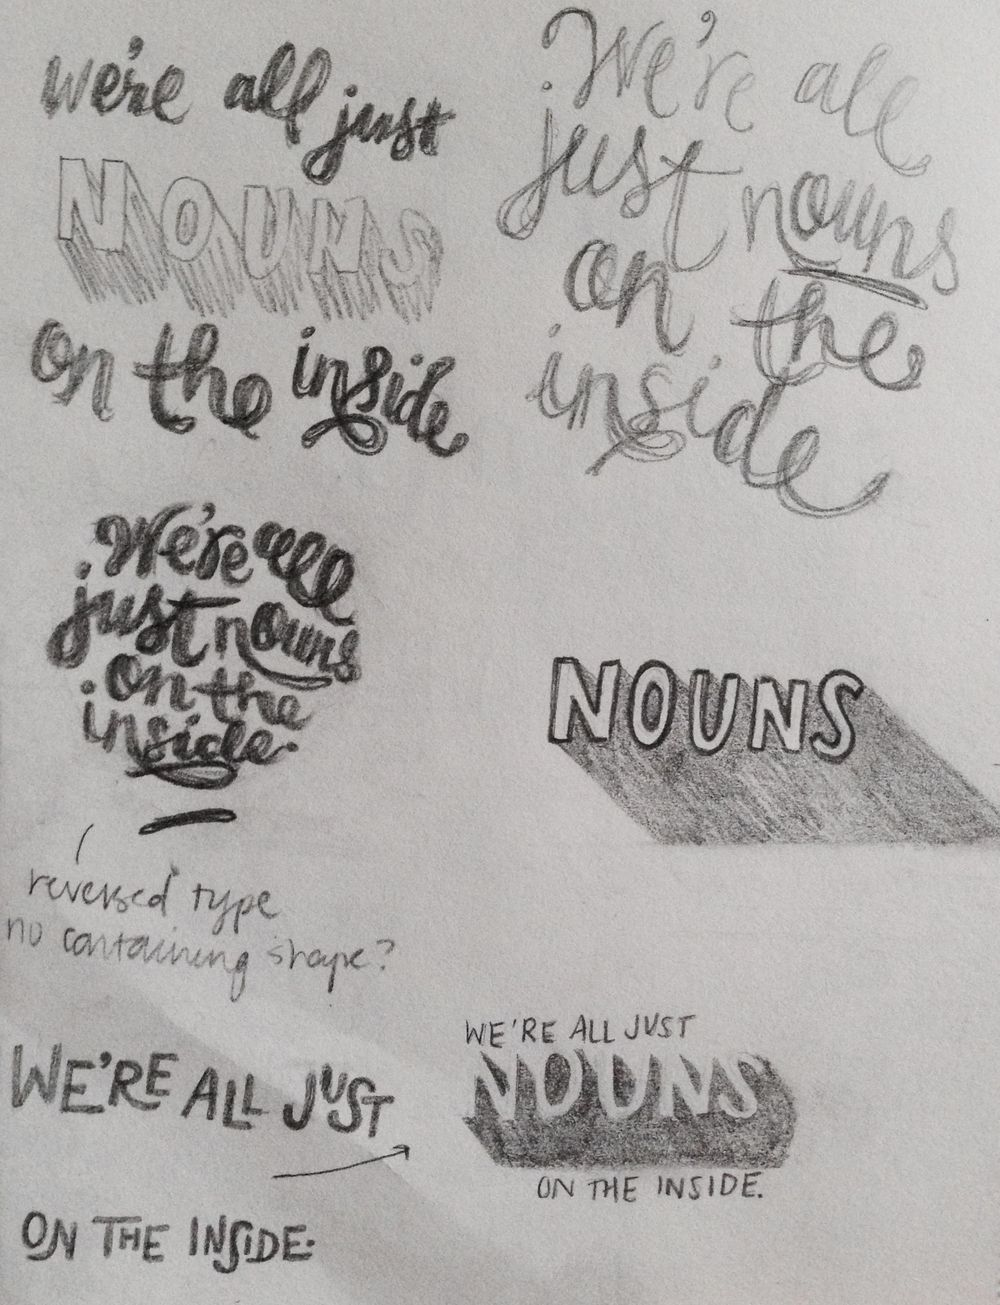 We're all just nouns on the inside. - image 4 - student project